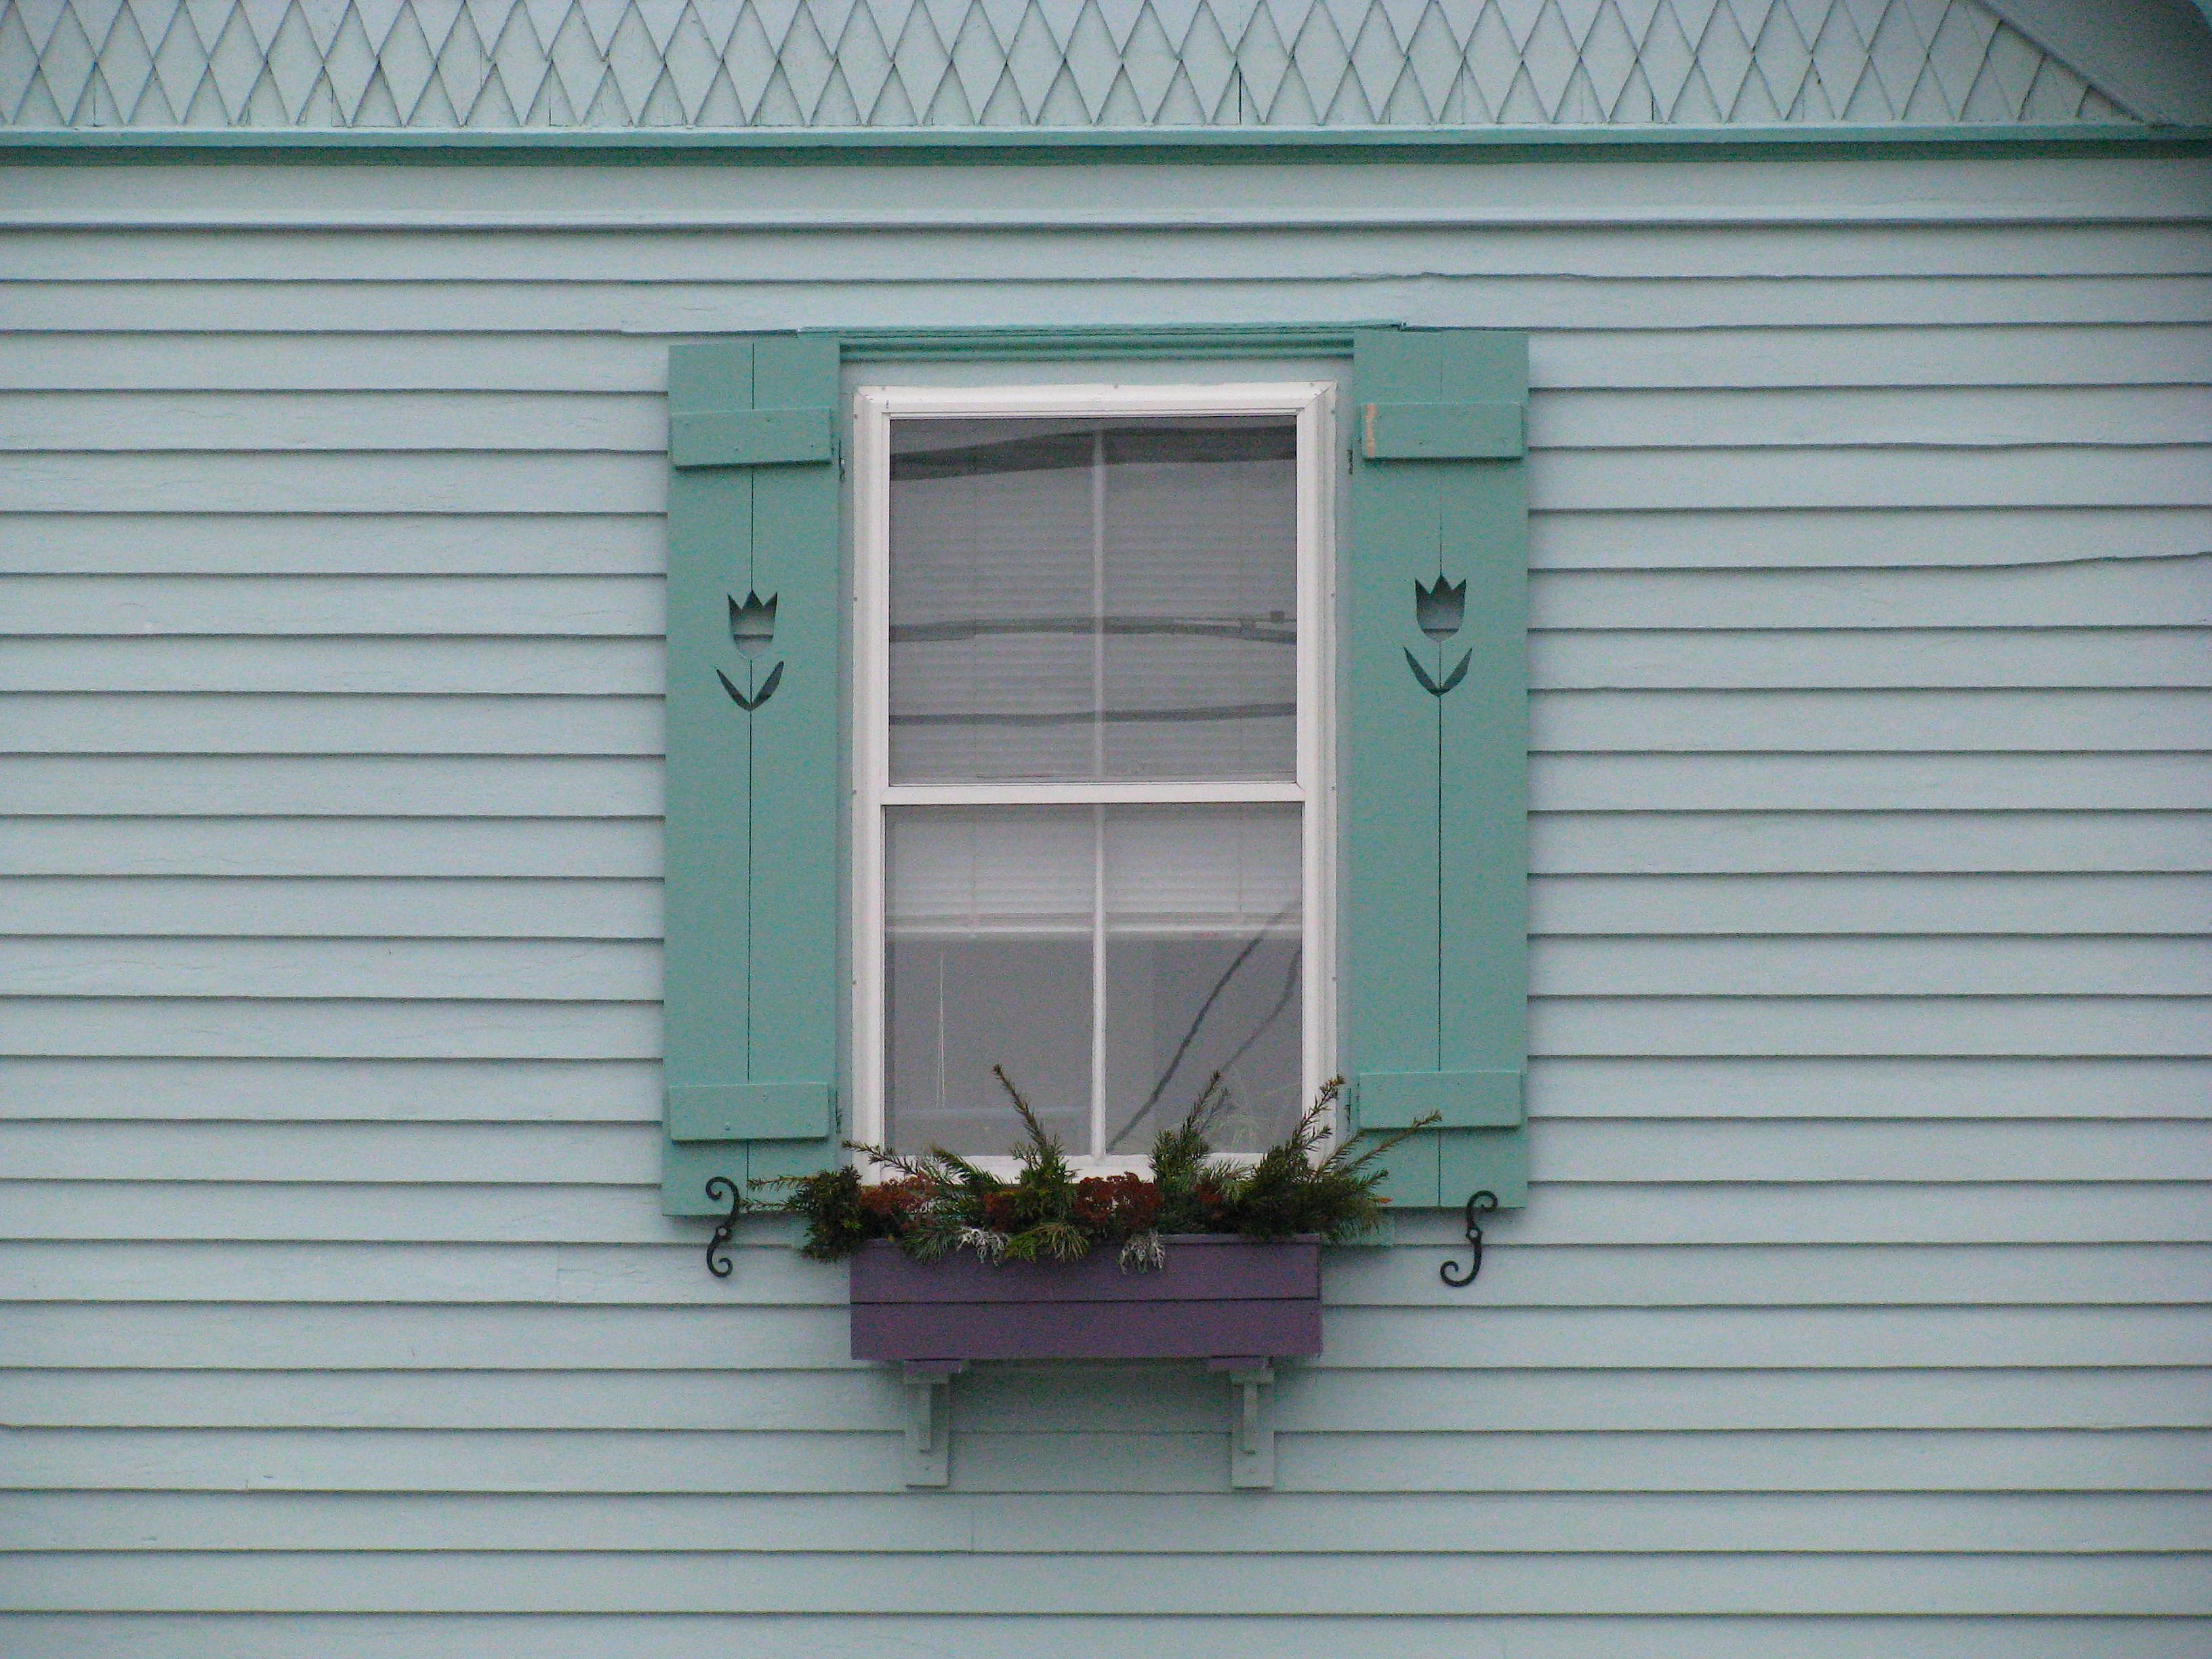 shutter bahama lovely picture hardware window decor shutters of exterior decorative design